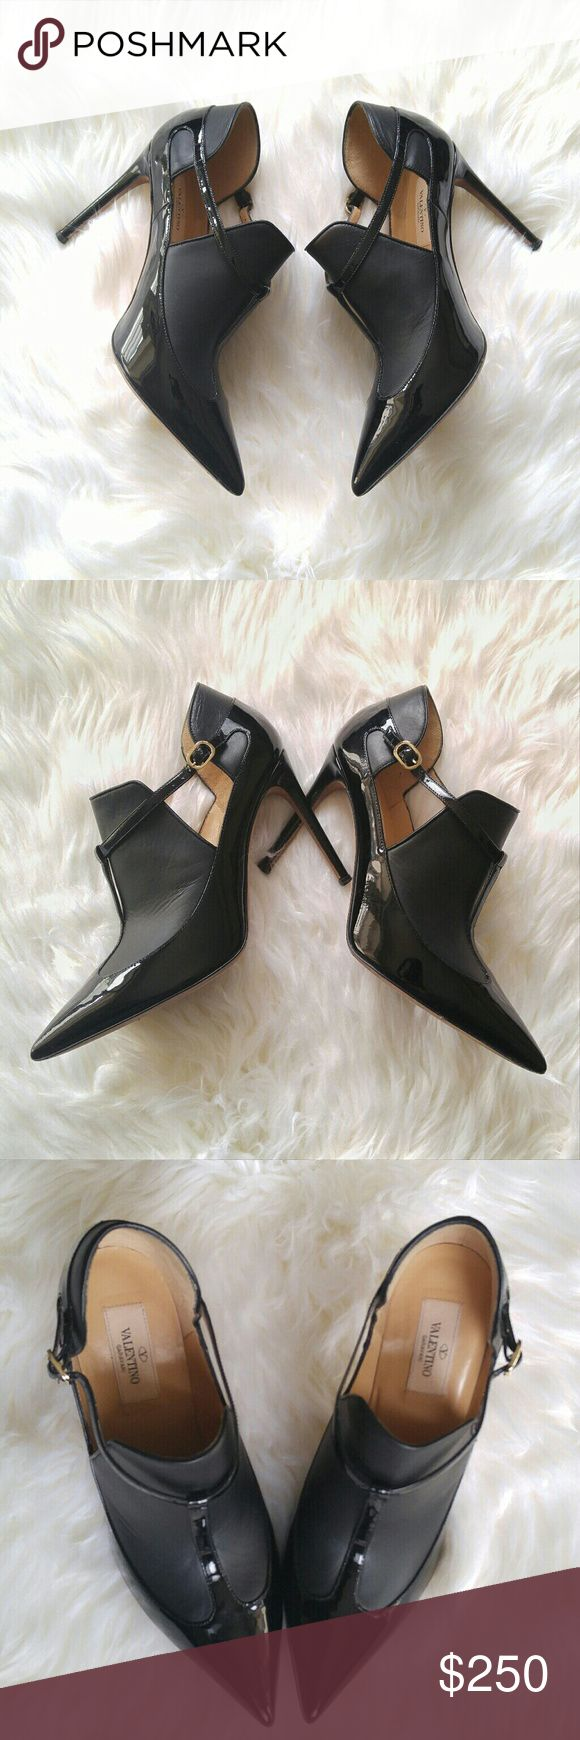 Birthday Sale! Valentino T Strap Booties 38.5 Authentic matte & patent Valentino booties. These are in great condition and will come with dustbag. These will fit 7.5-8 best :) Valentino Shoes Ankle Boots & Booties